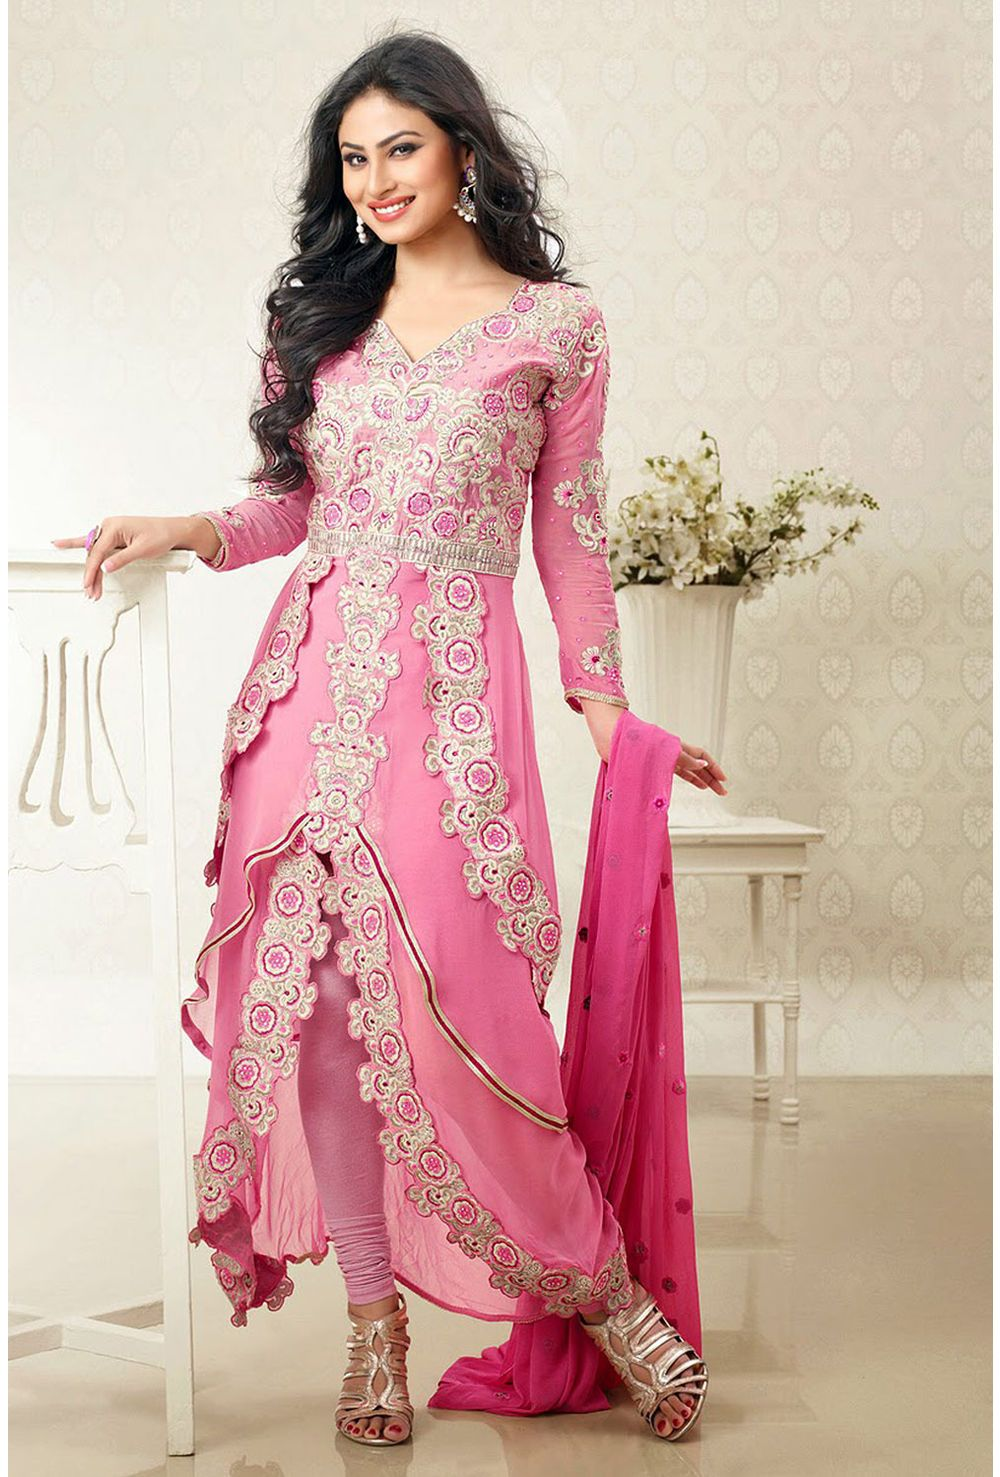 6587001e70 Buy Deep Rose Pink Faux Georgette Designer Suit Comes With A Matching  Dupatta online - Glowindian